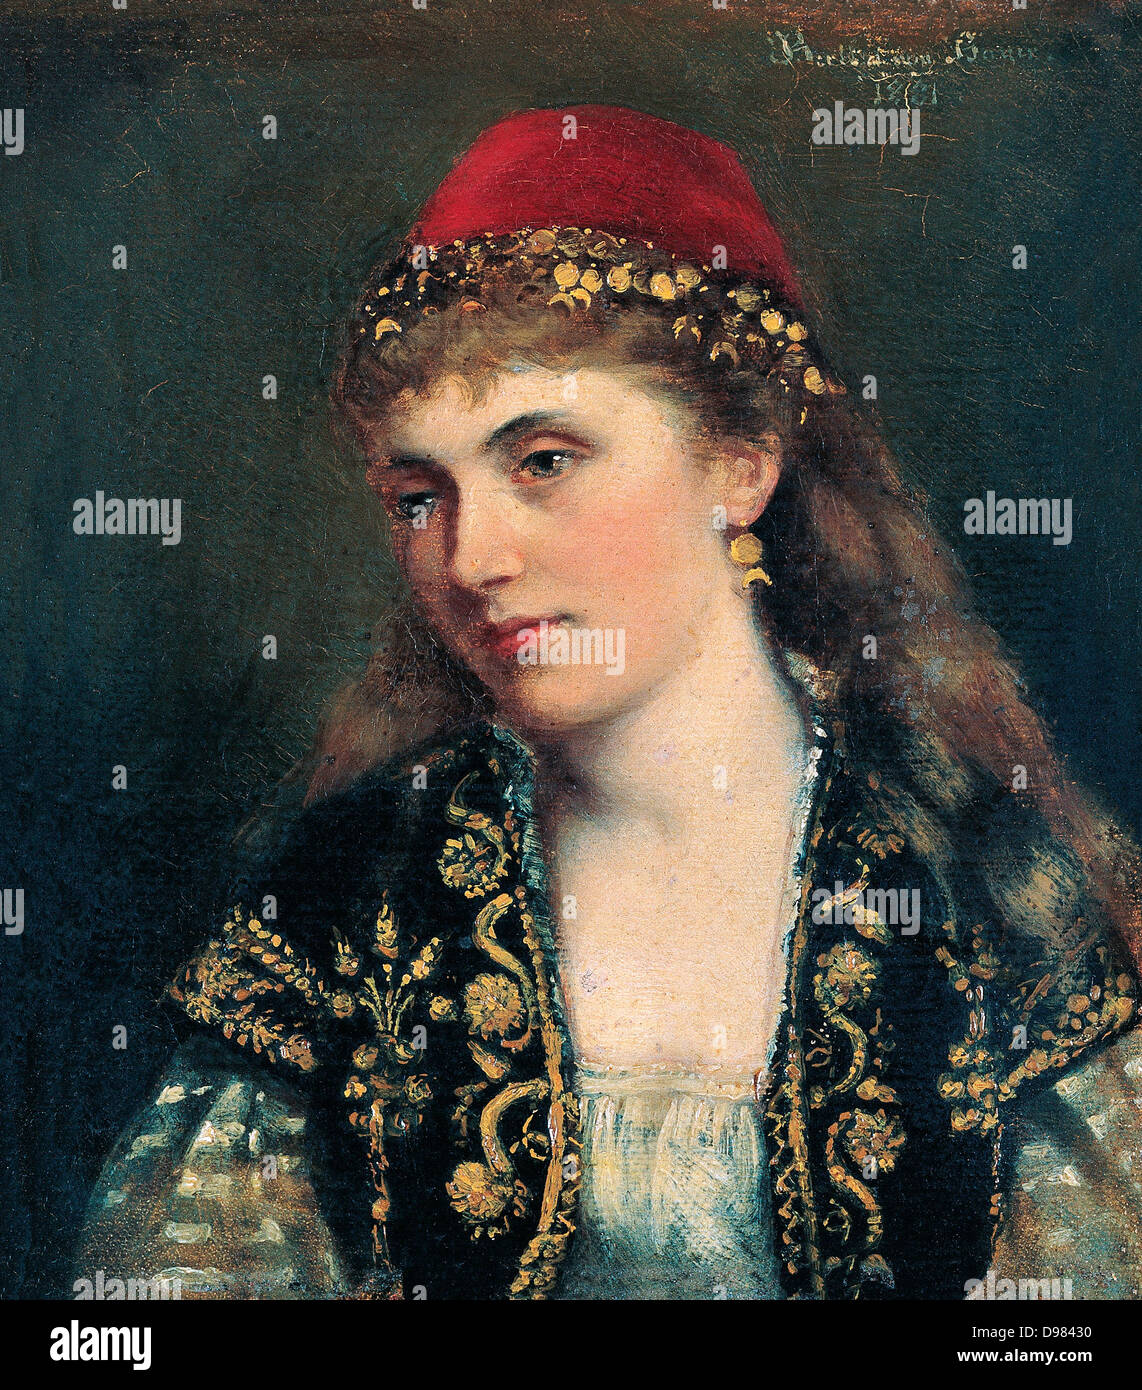 Bertha von Bayer, Portrait of a Woman. 19th Century. Oil on canvas. Pera Museum, Istanbul. - Stock Image